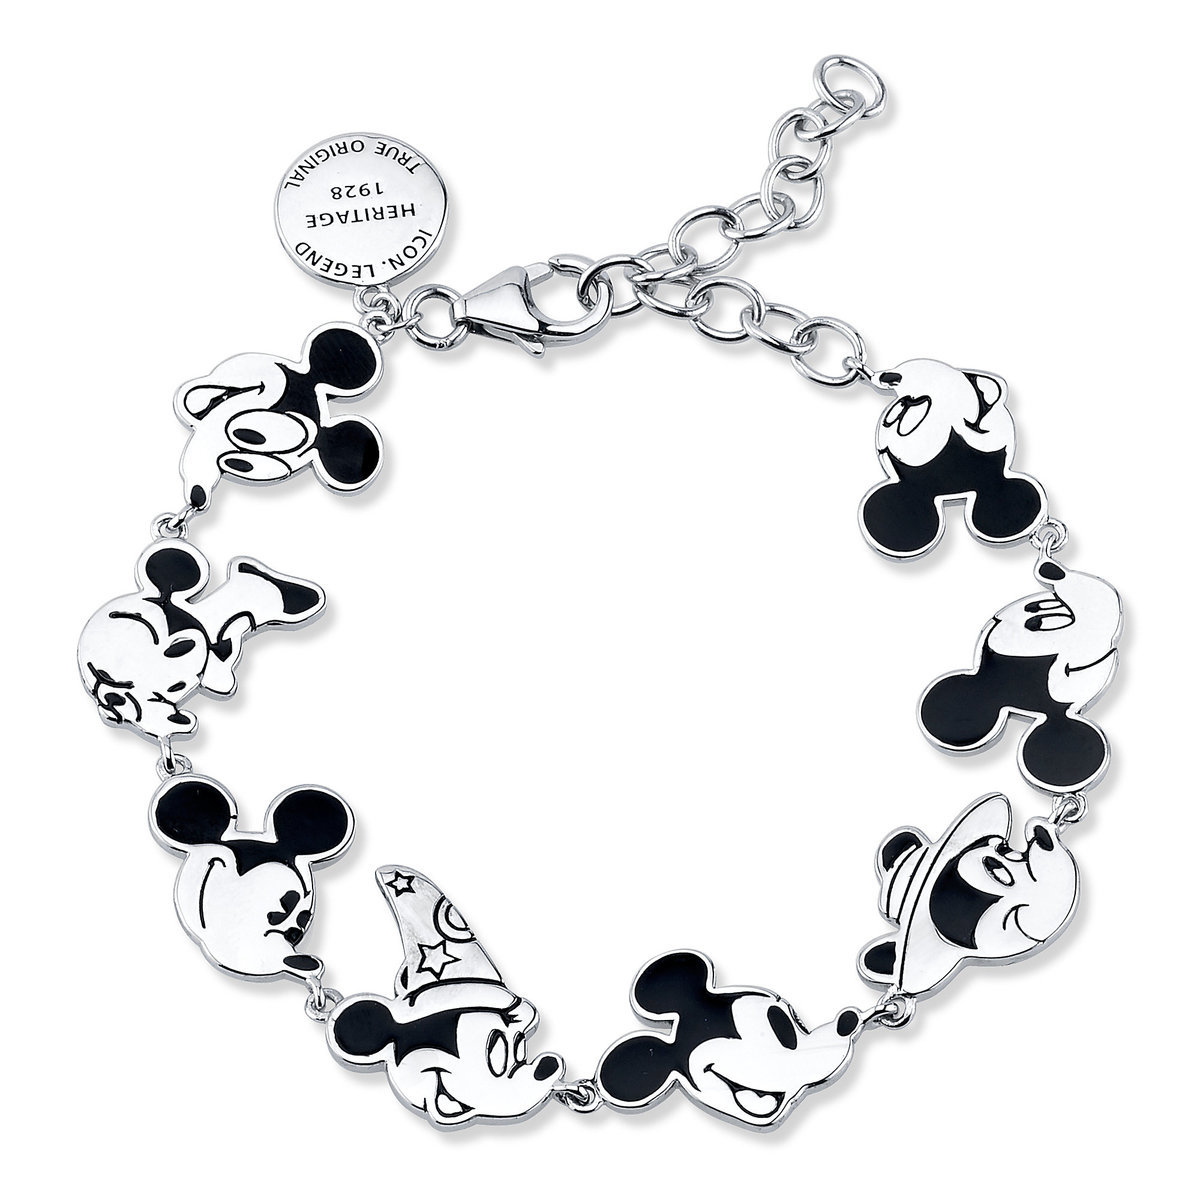 474af1e04cdd6 Mickey Mouse Through the Years Bracelet